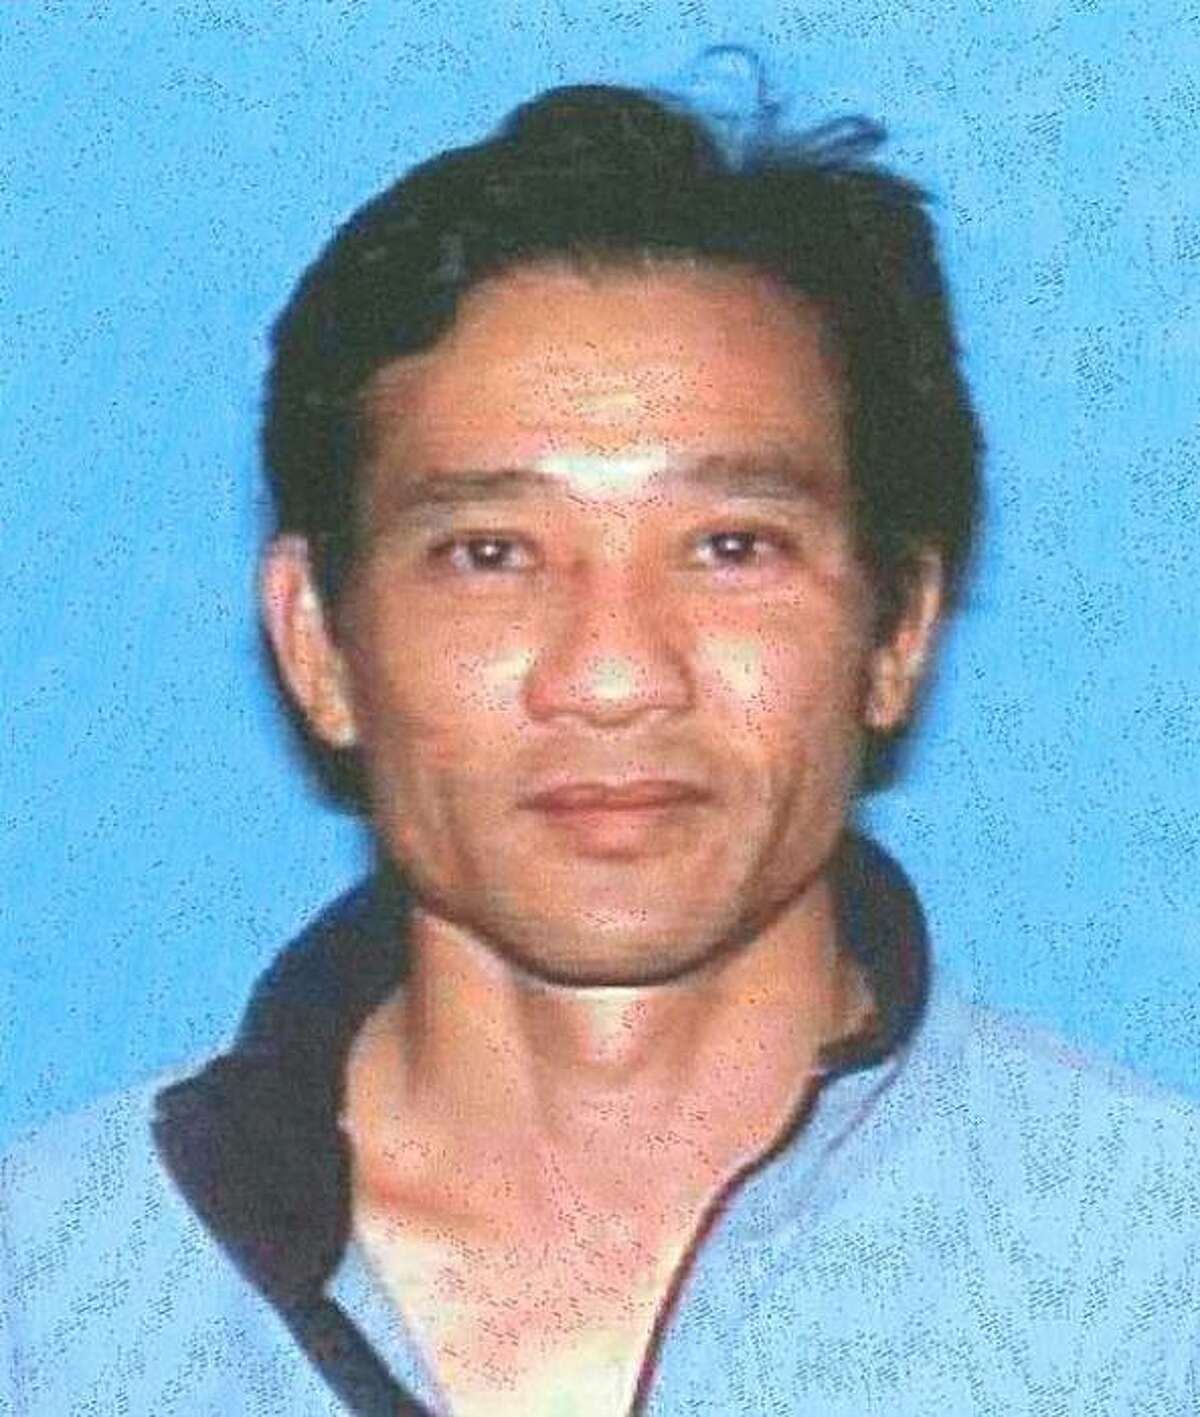 Tong Le, 44, shot to death Sept. 13 in his car at his home in Novato.